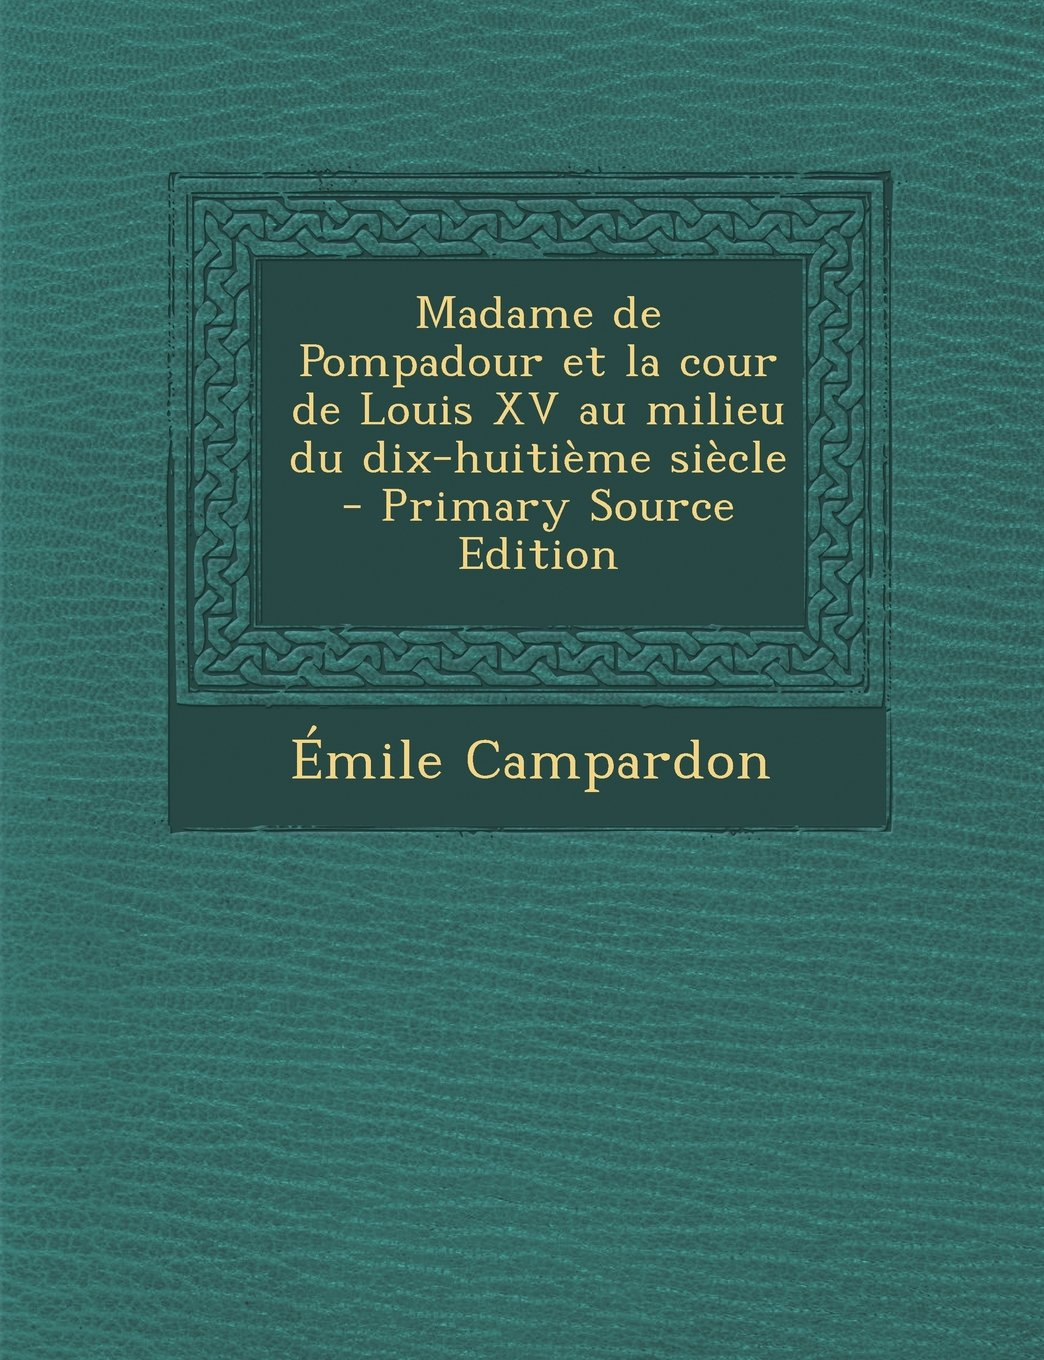 Download Madame de Pompadour Et La Cour de Louis XV Au Milieu Du Dix-Huitieme Siecle (French Edition) PDF